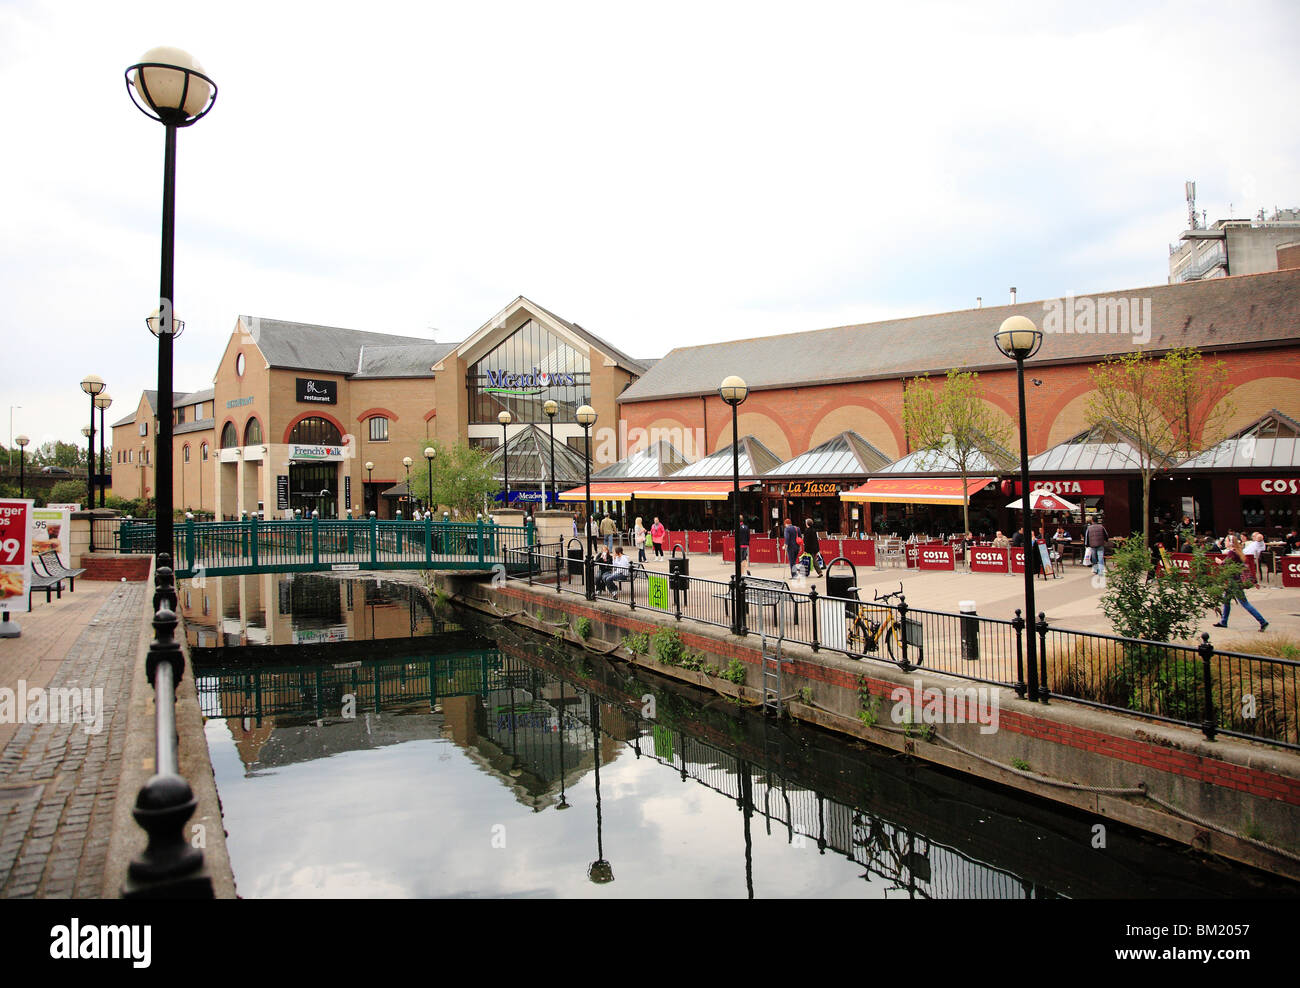 Chelmsford town centre - Stock Image